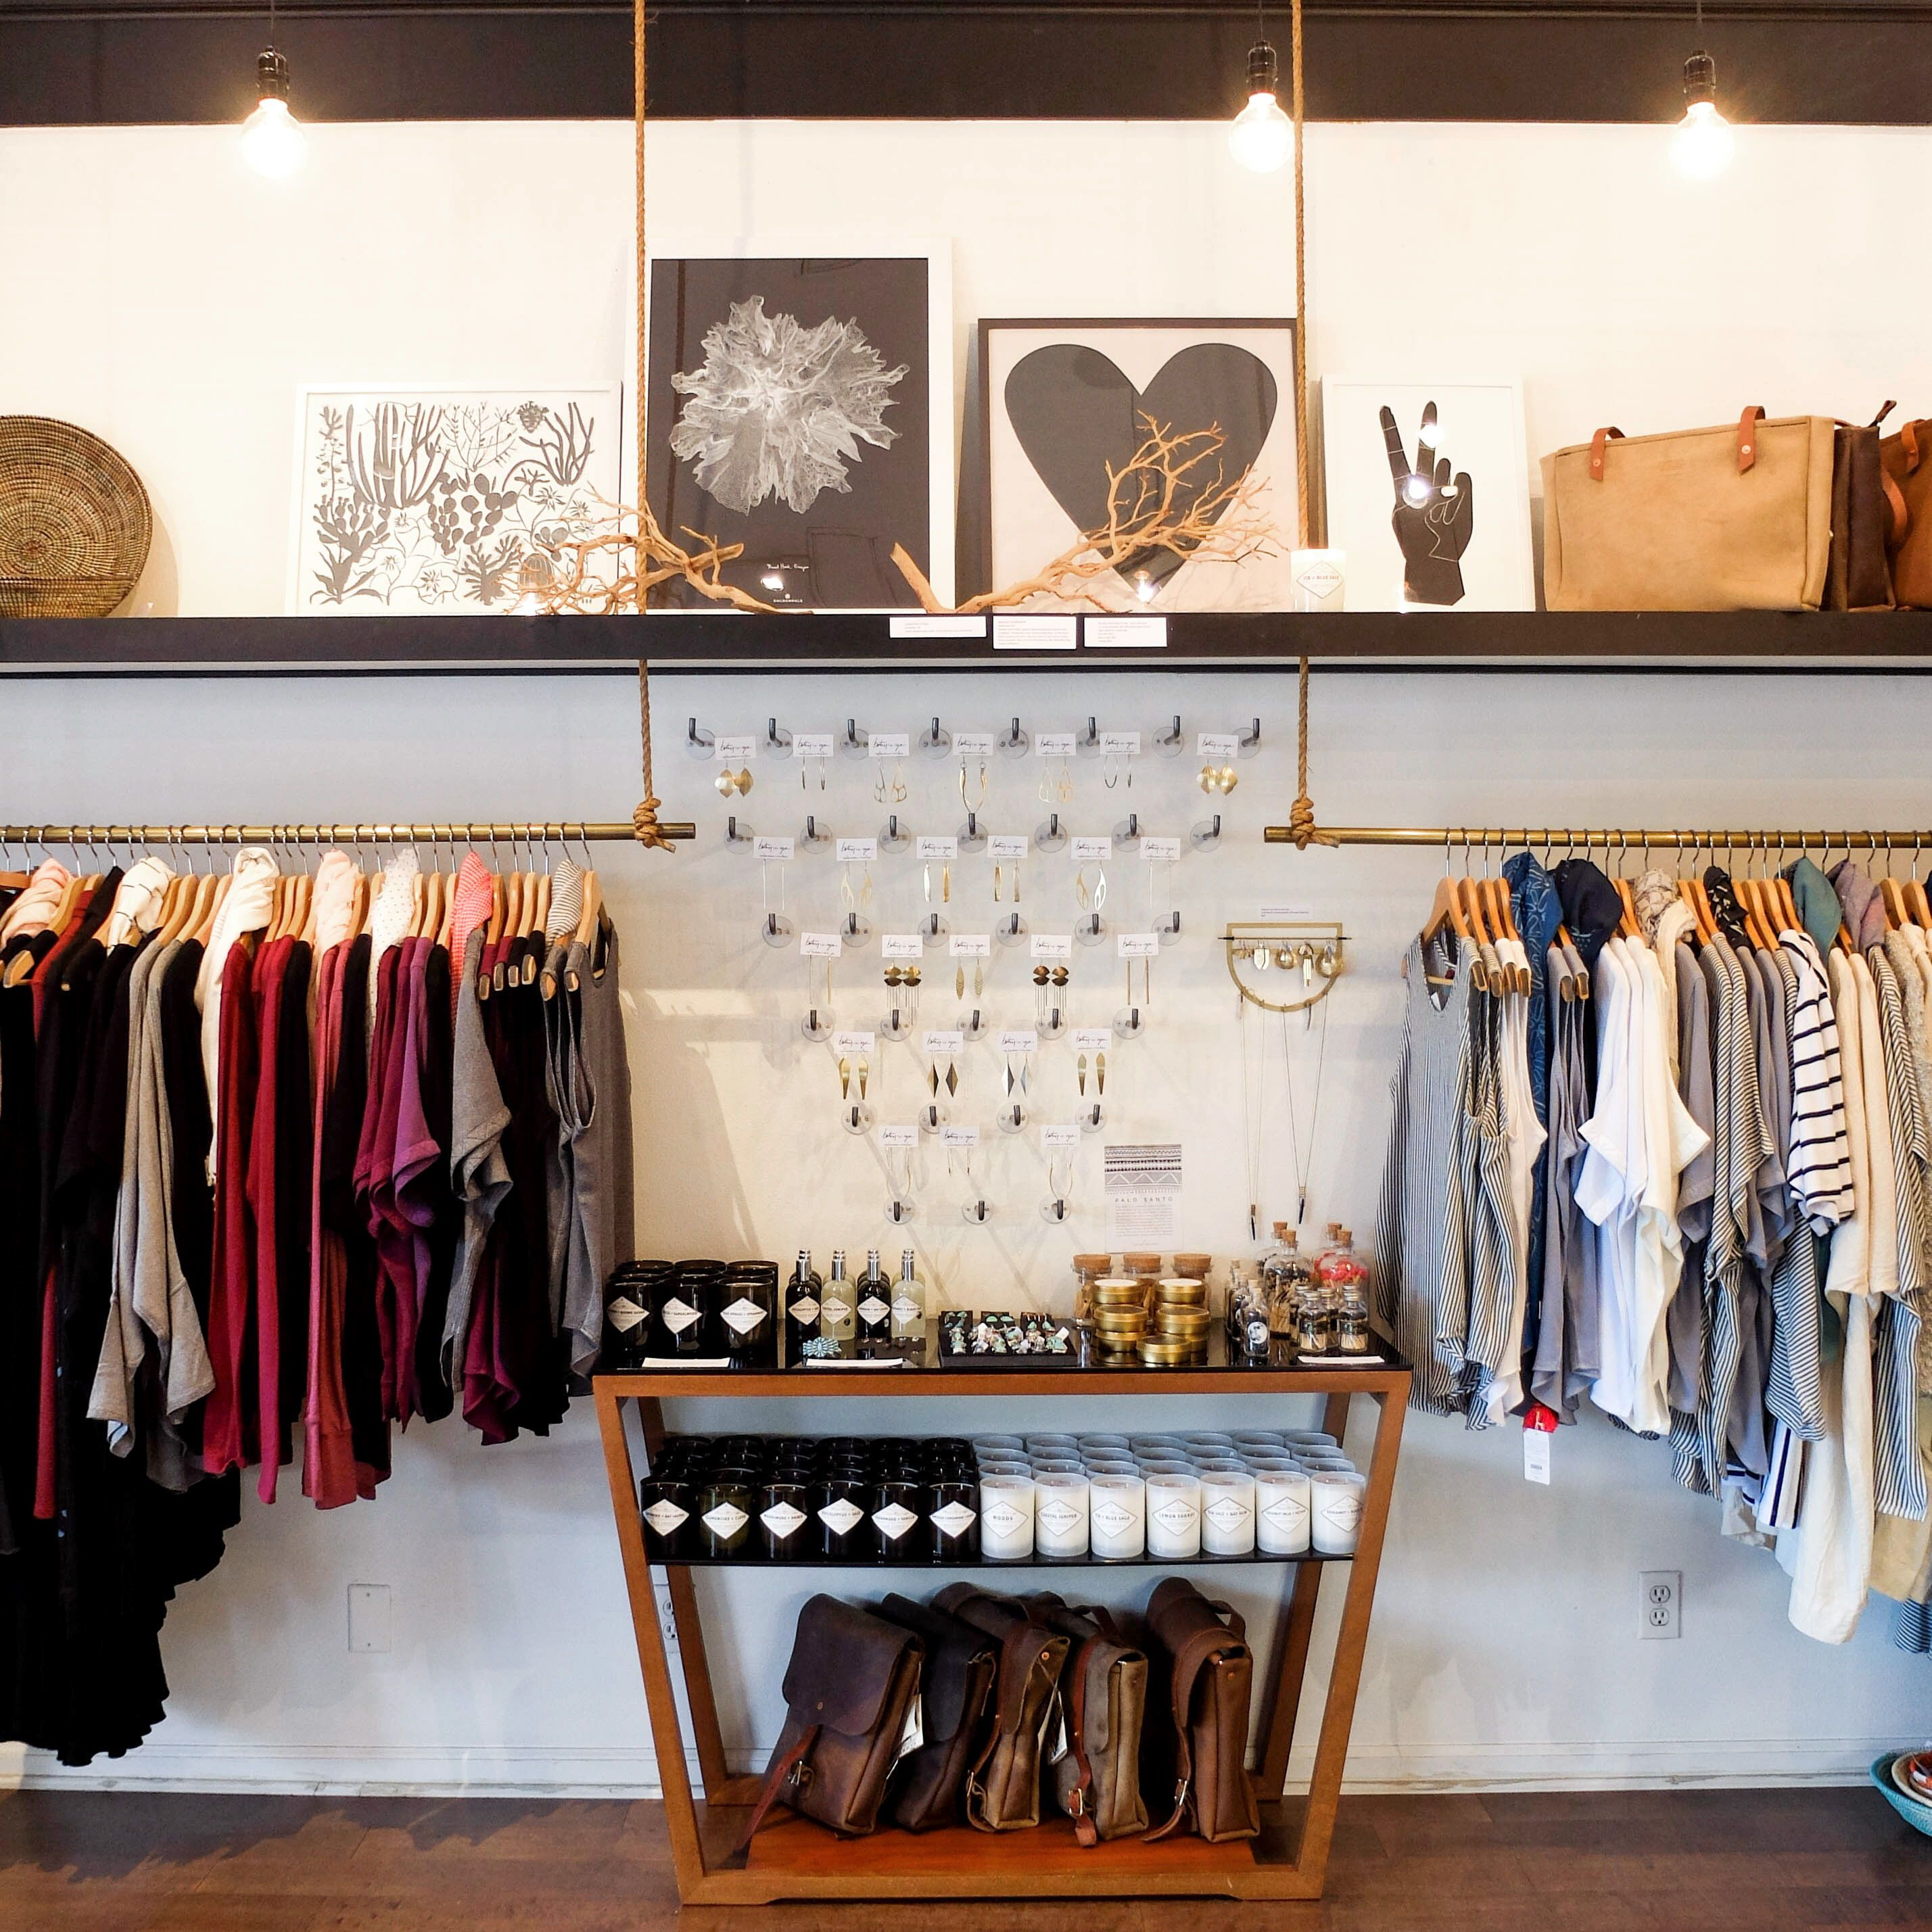 Our Portland Oregon Home We Love How Even Though Our Retail Shop Changes With The Seasons You Can Always Hear The Steady Hammering In With Images Bath And Body Handcraft